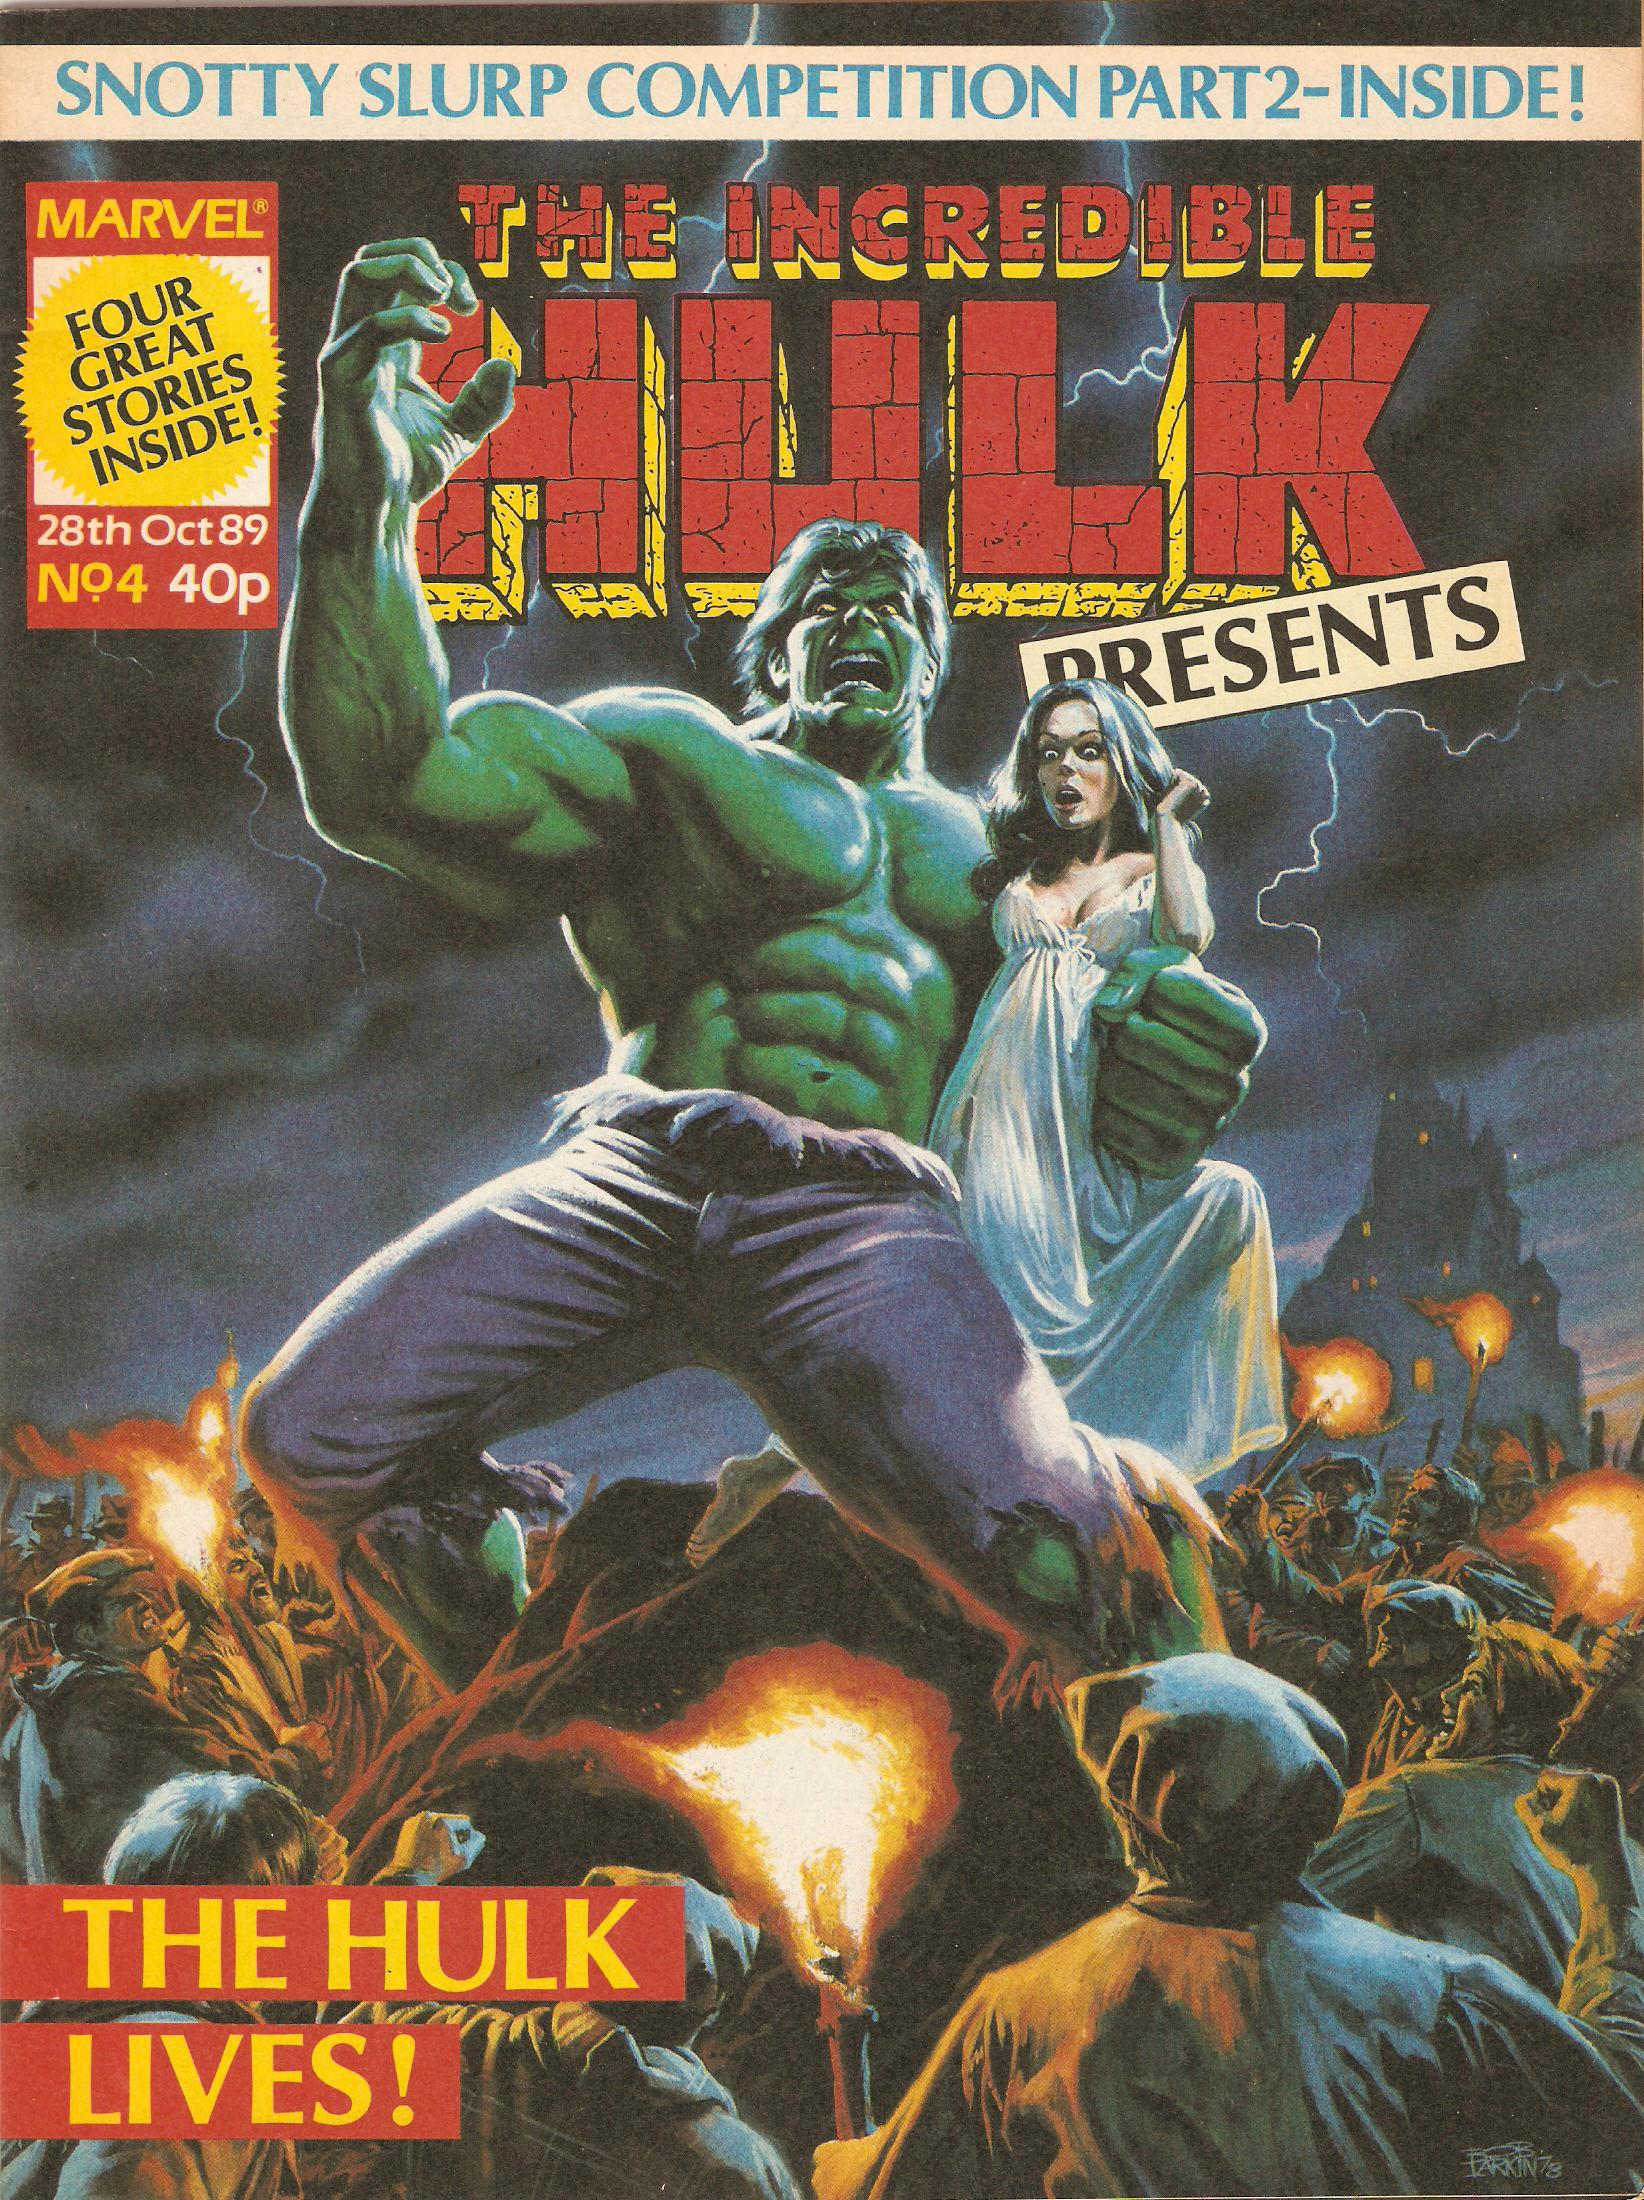 Incredible hulk presents 4